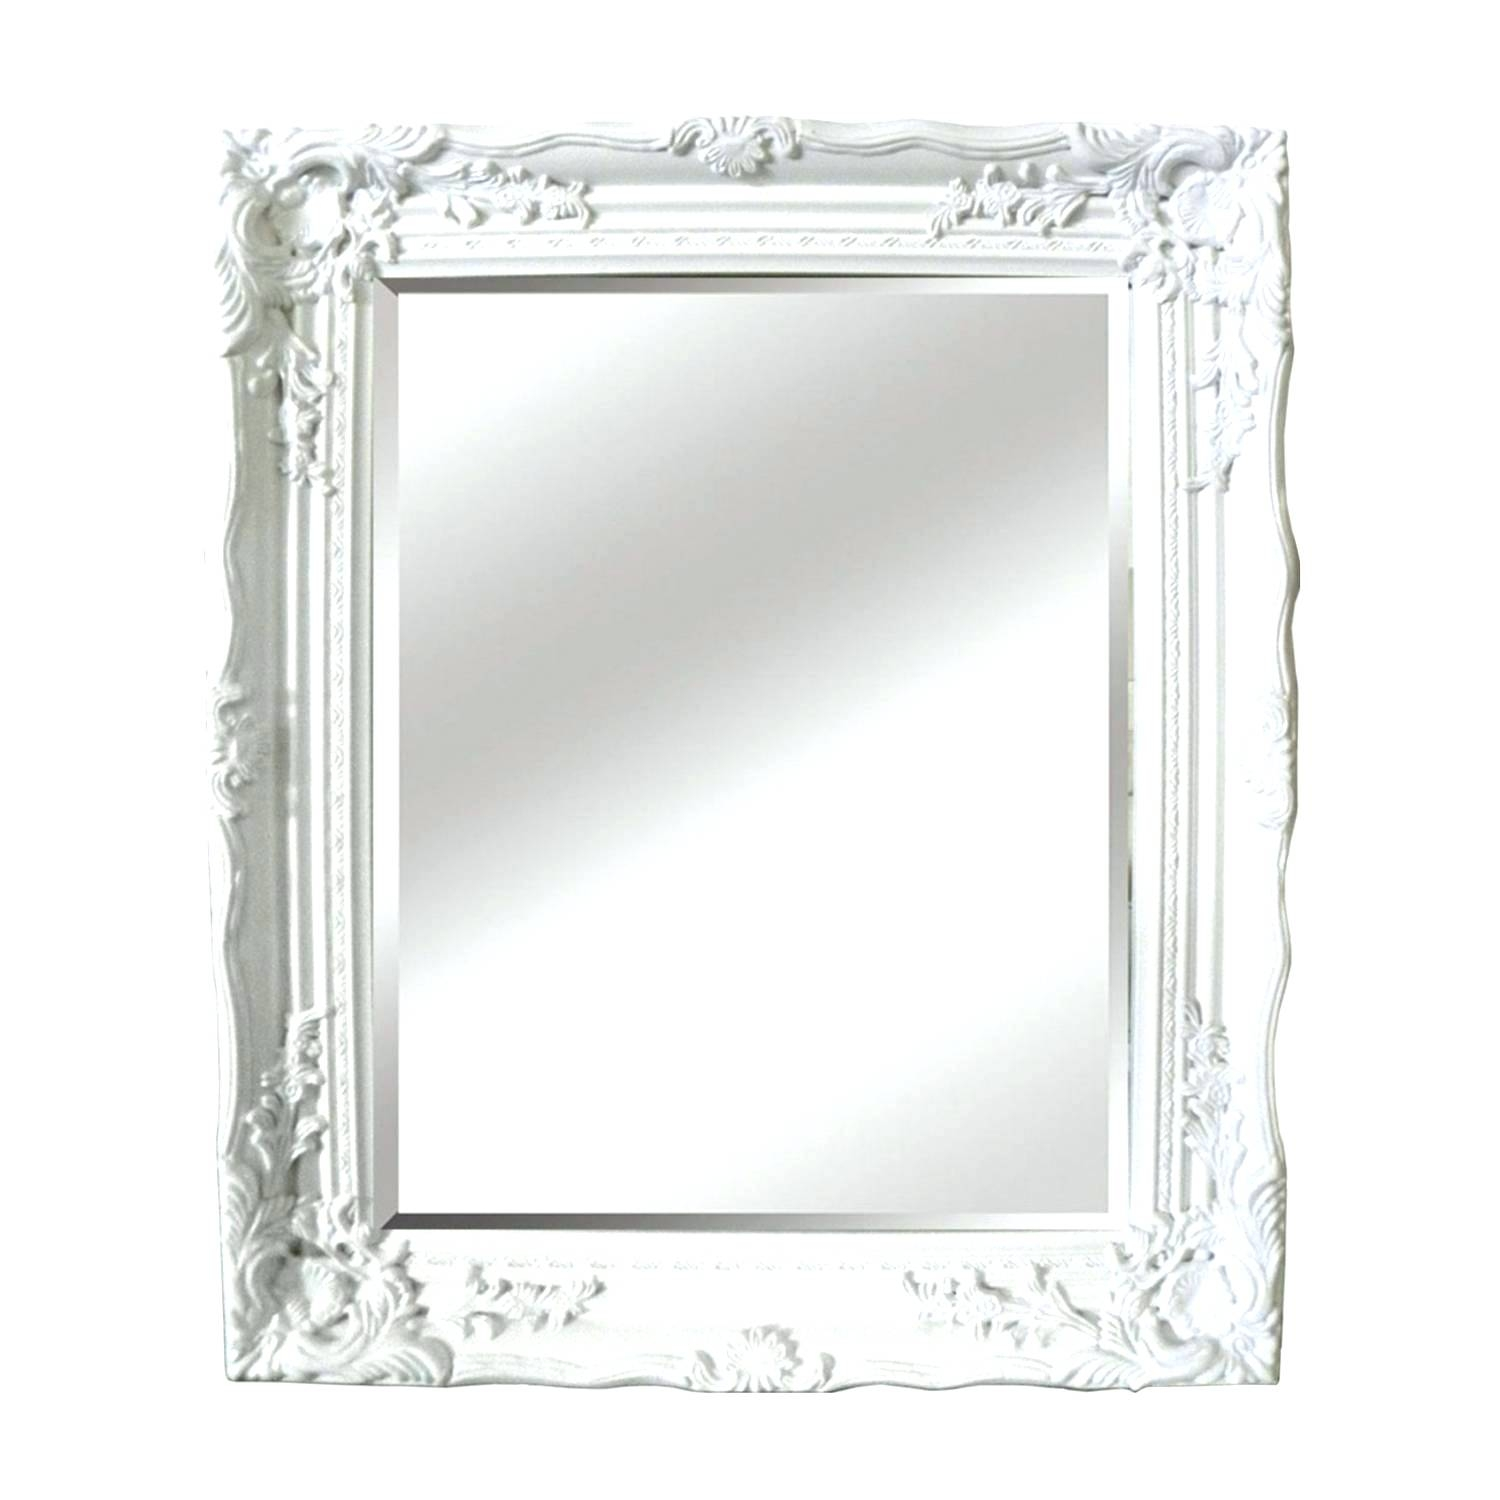 White Antique Mirror Pitchloveco Regarding Ornate White Mirror (Image 11 of 15)